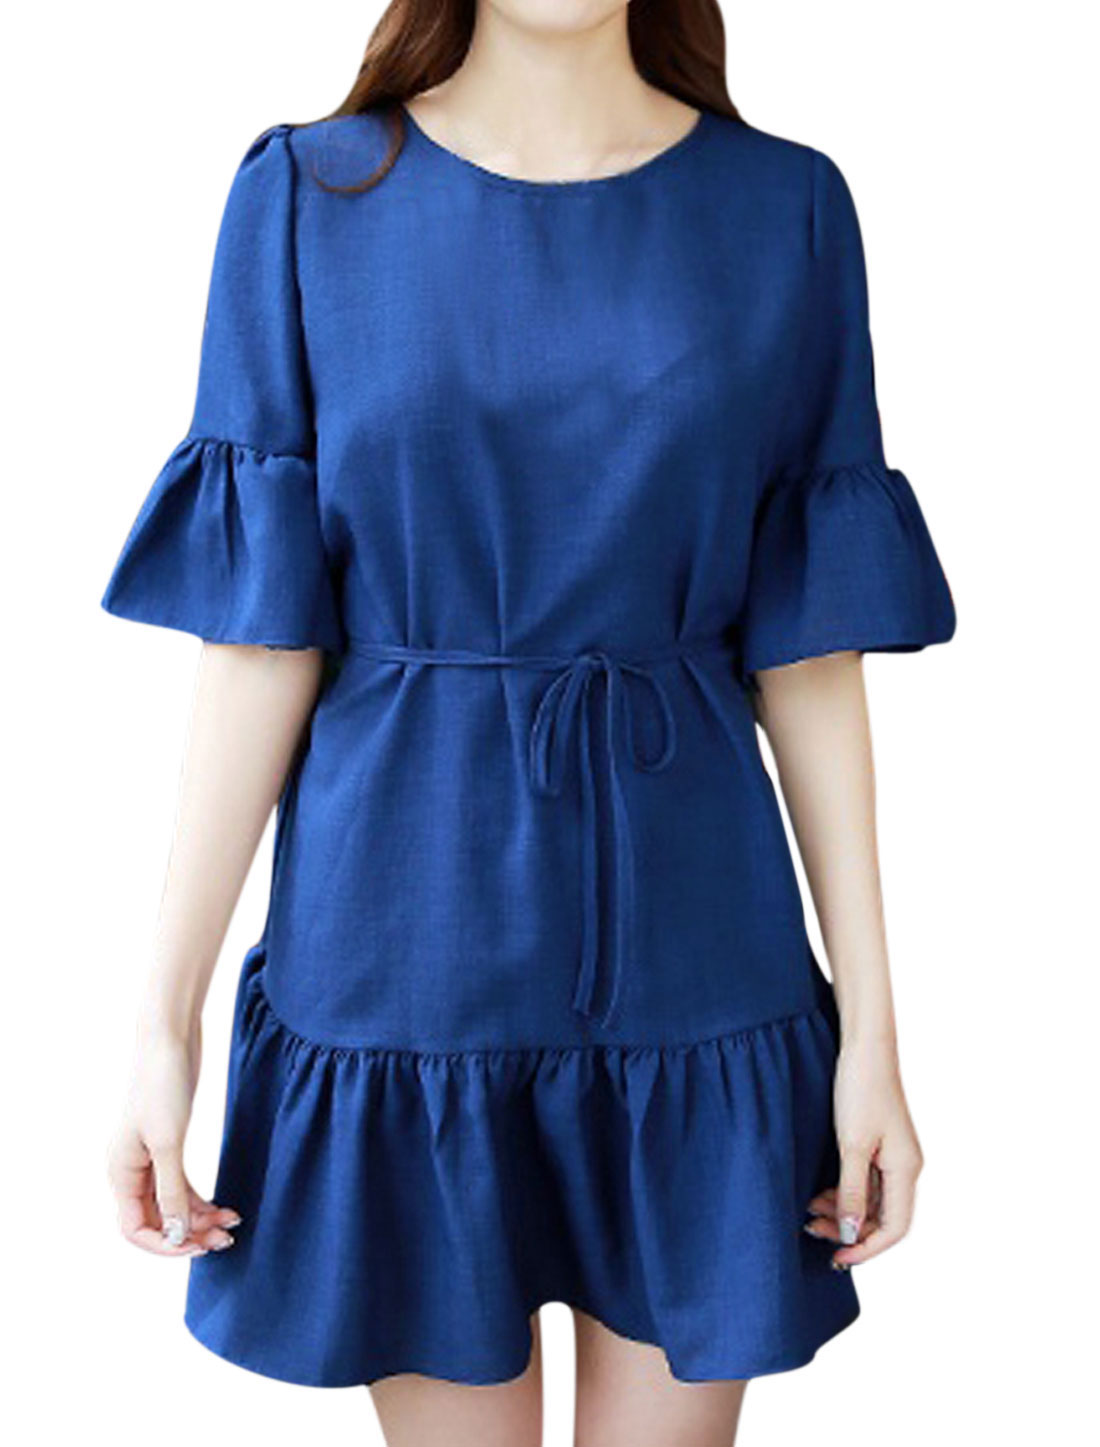 Women Half Sleeve Round Neck Waist String Ruffle Hem Skater Dress Navy Blue S